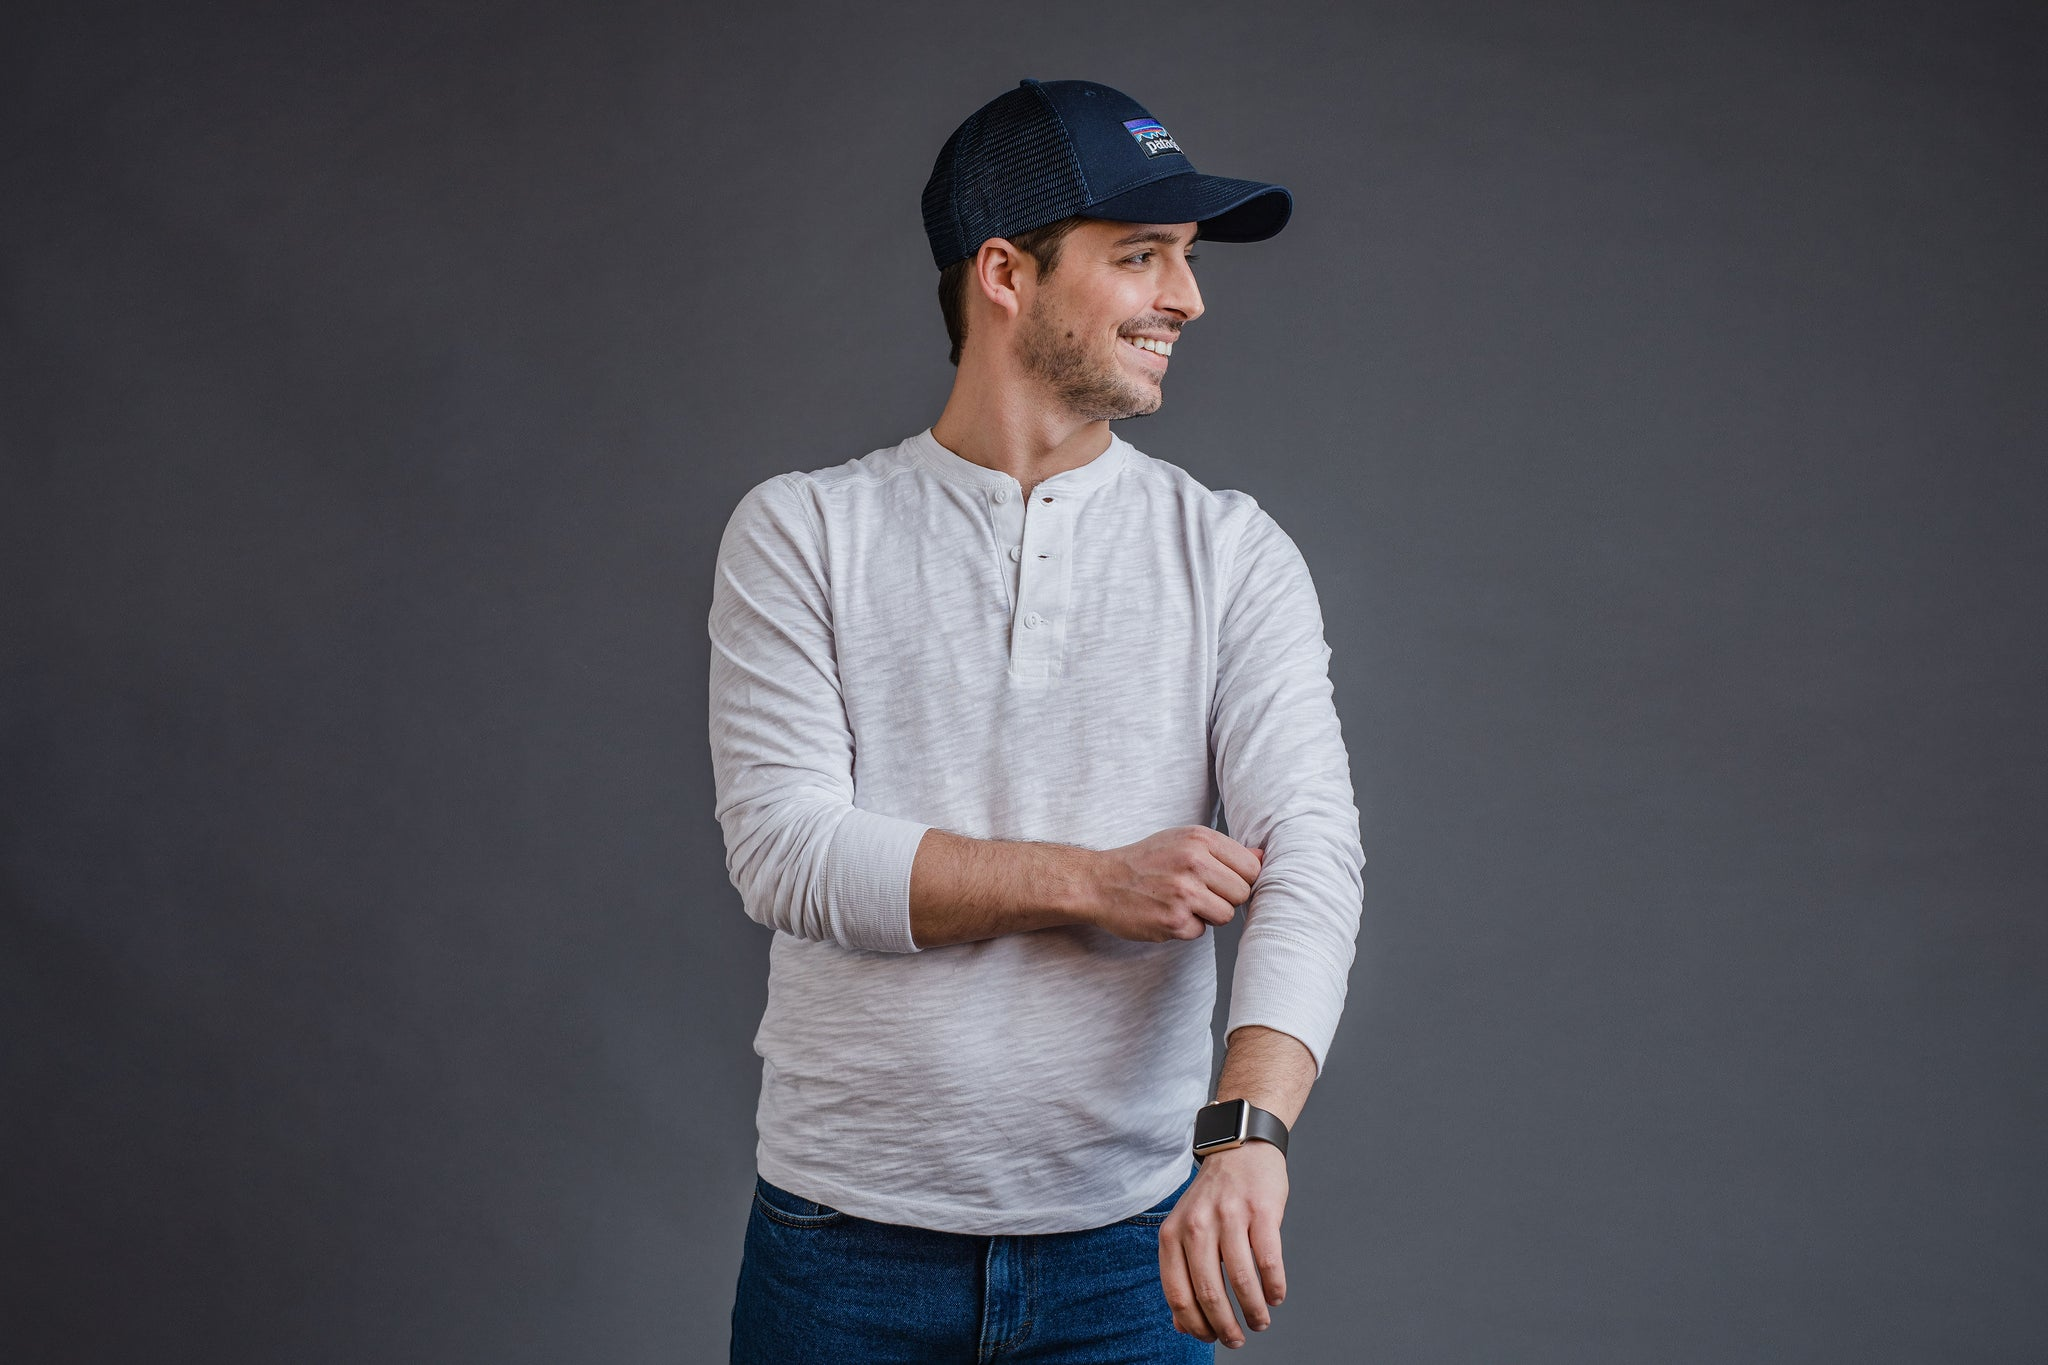 dcc0c8d039f How To Wear a Henley Shirt (5 Outfit Ideas) – Peter Manning NYC